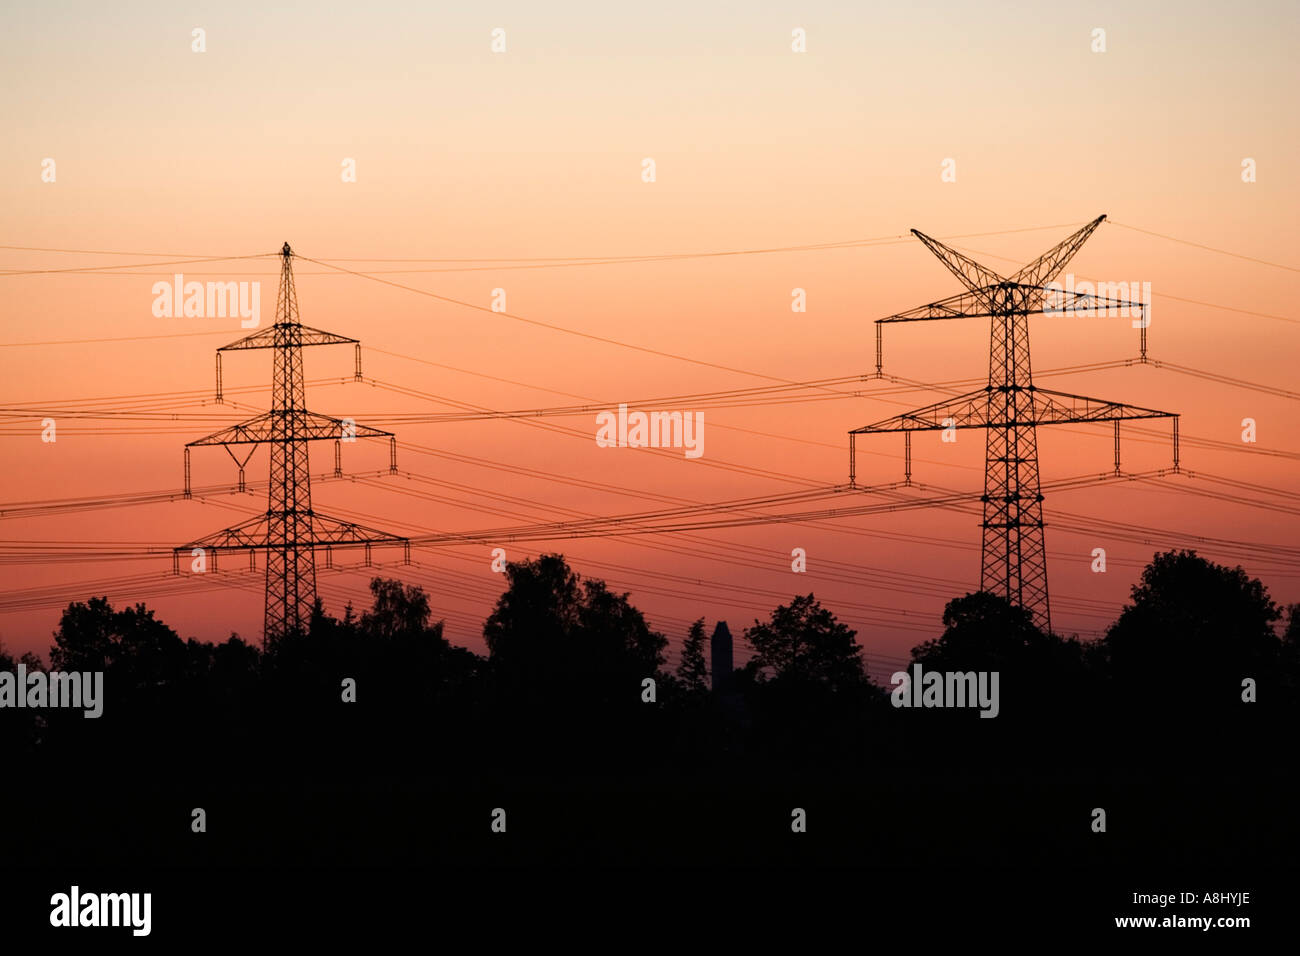 Pylon in front of red sky in the evening - Stock Image